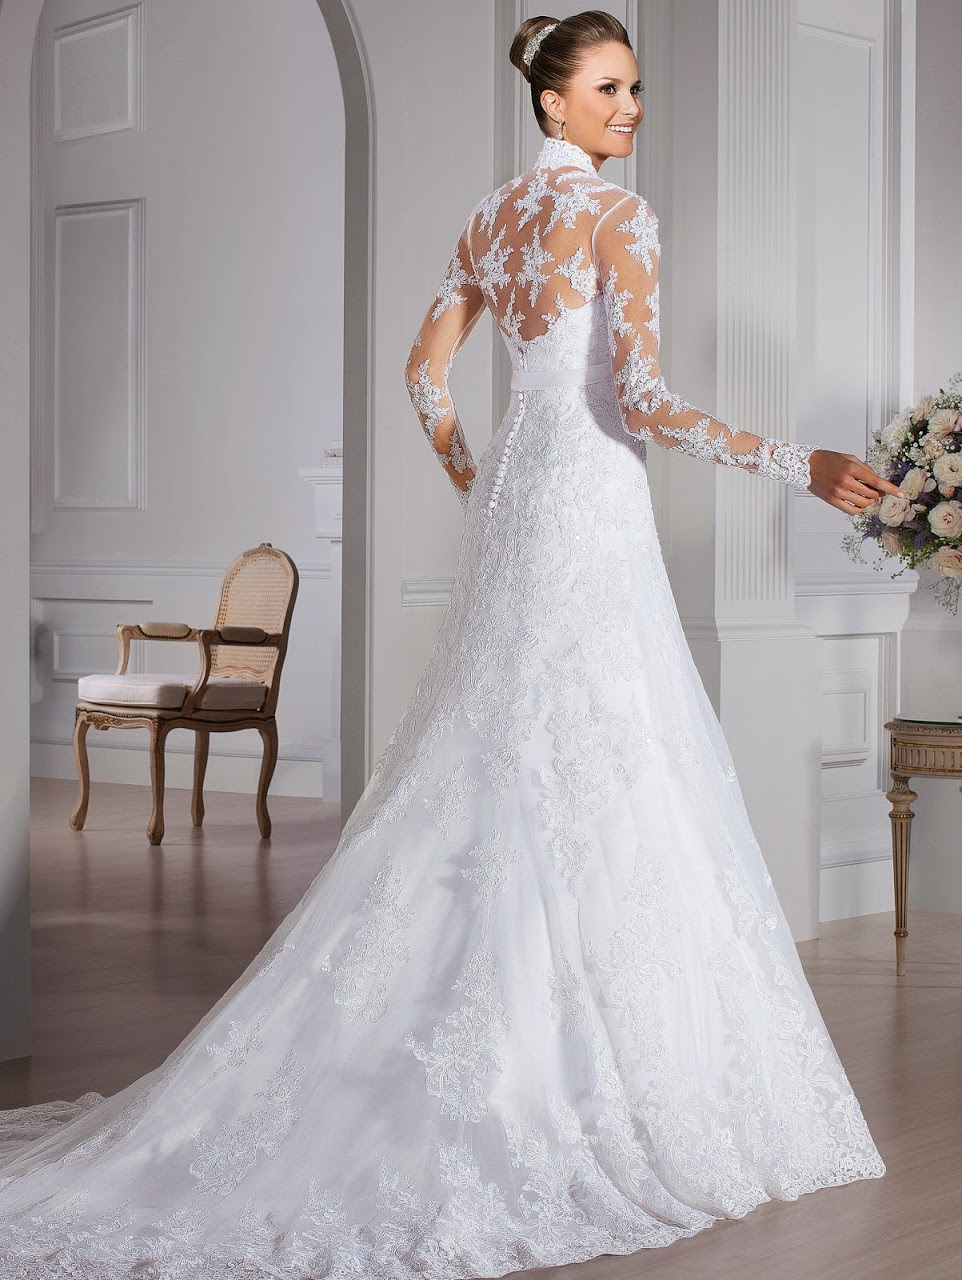 Vintage Muslim Long Sleeves Wedding Dress Full Lace Back Mermaid Gown High Neck Bridal A232 In Dresses From Weddings Events On